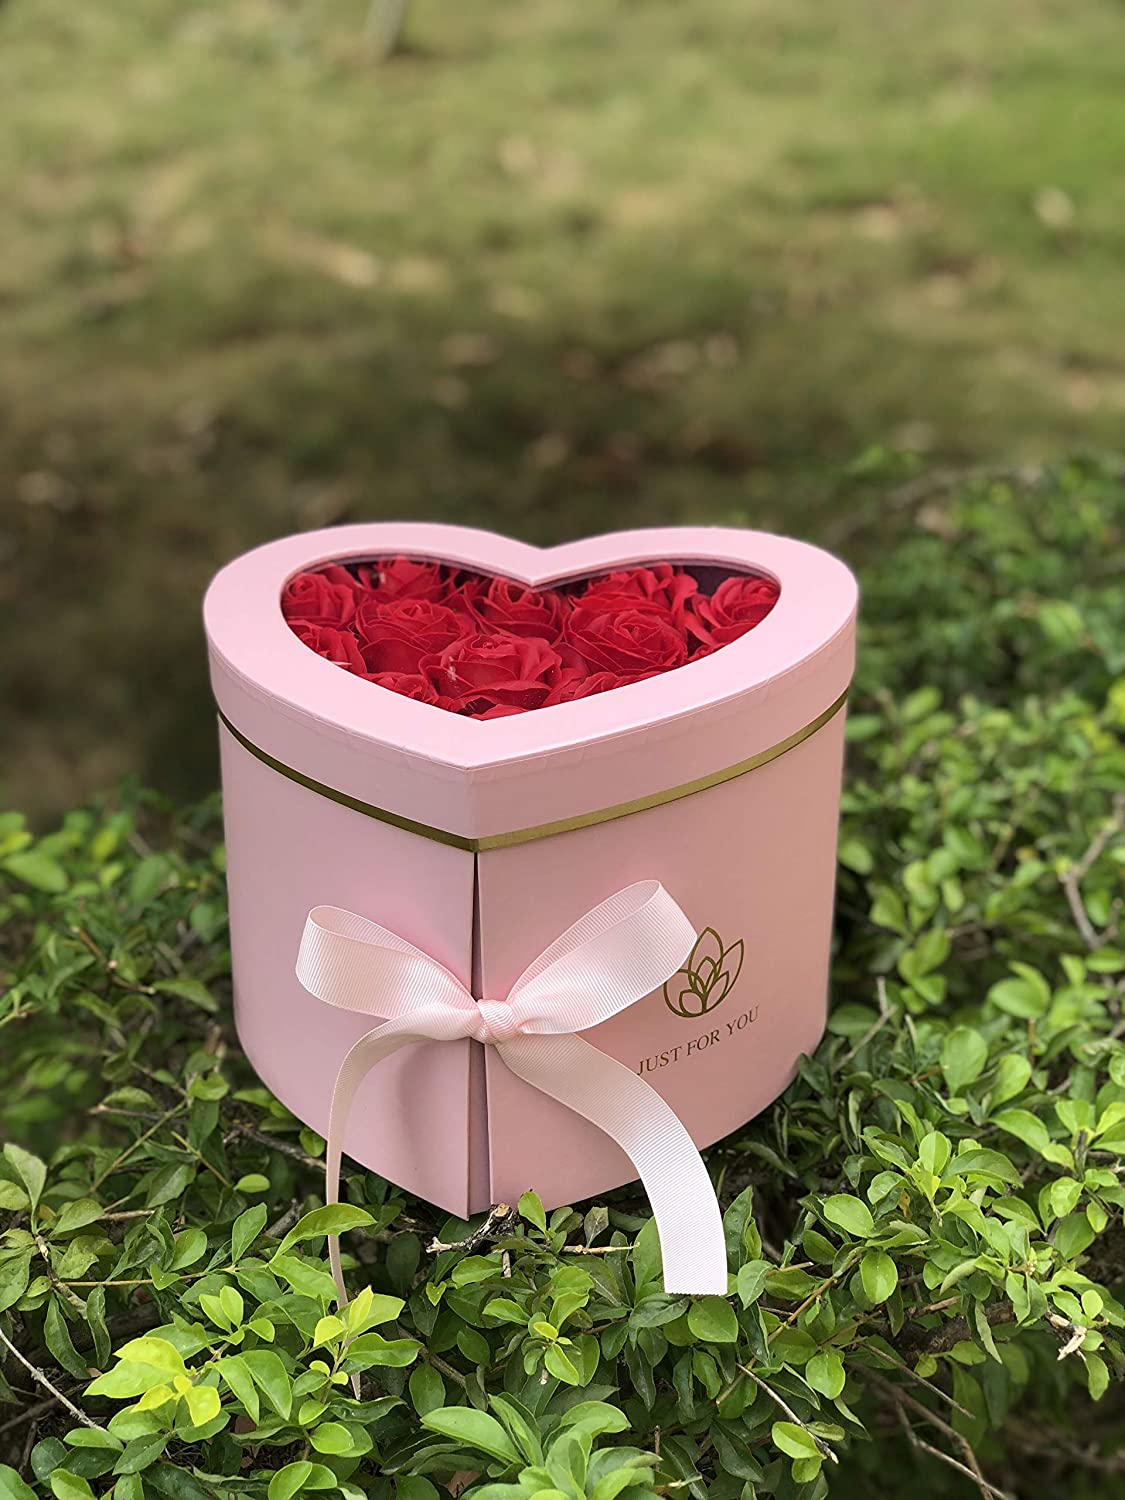 [USA-SALES] Premium Quality Heart Shaped Flower Box, Gift Boxes for Luxury Flower and Gift Arrangements, with Lids, Size 9x8x6.5, for Luxury Style Flower Arrangements, Ships From USA (Pink)